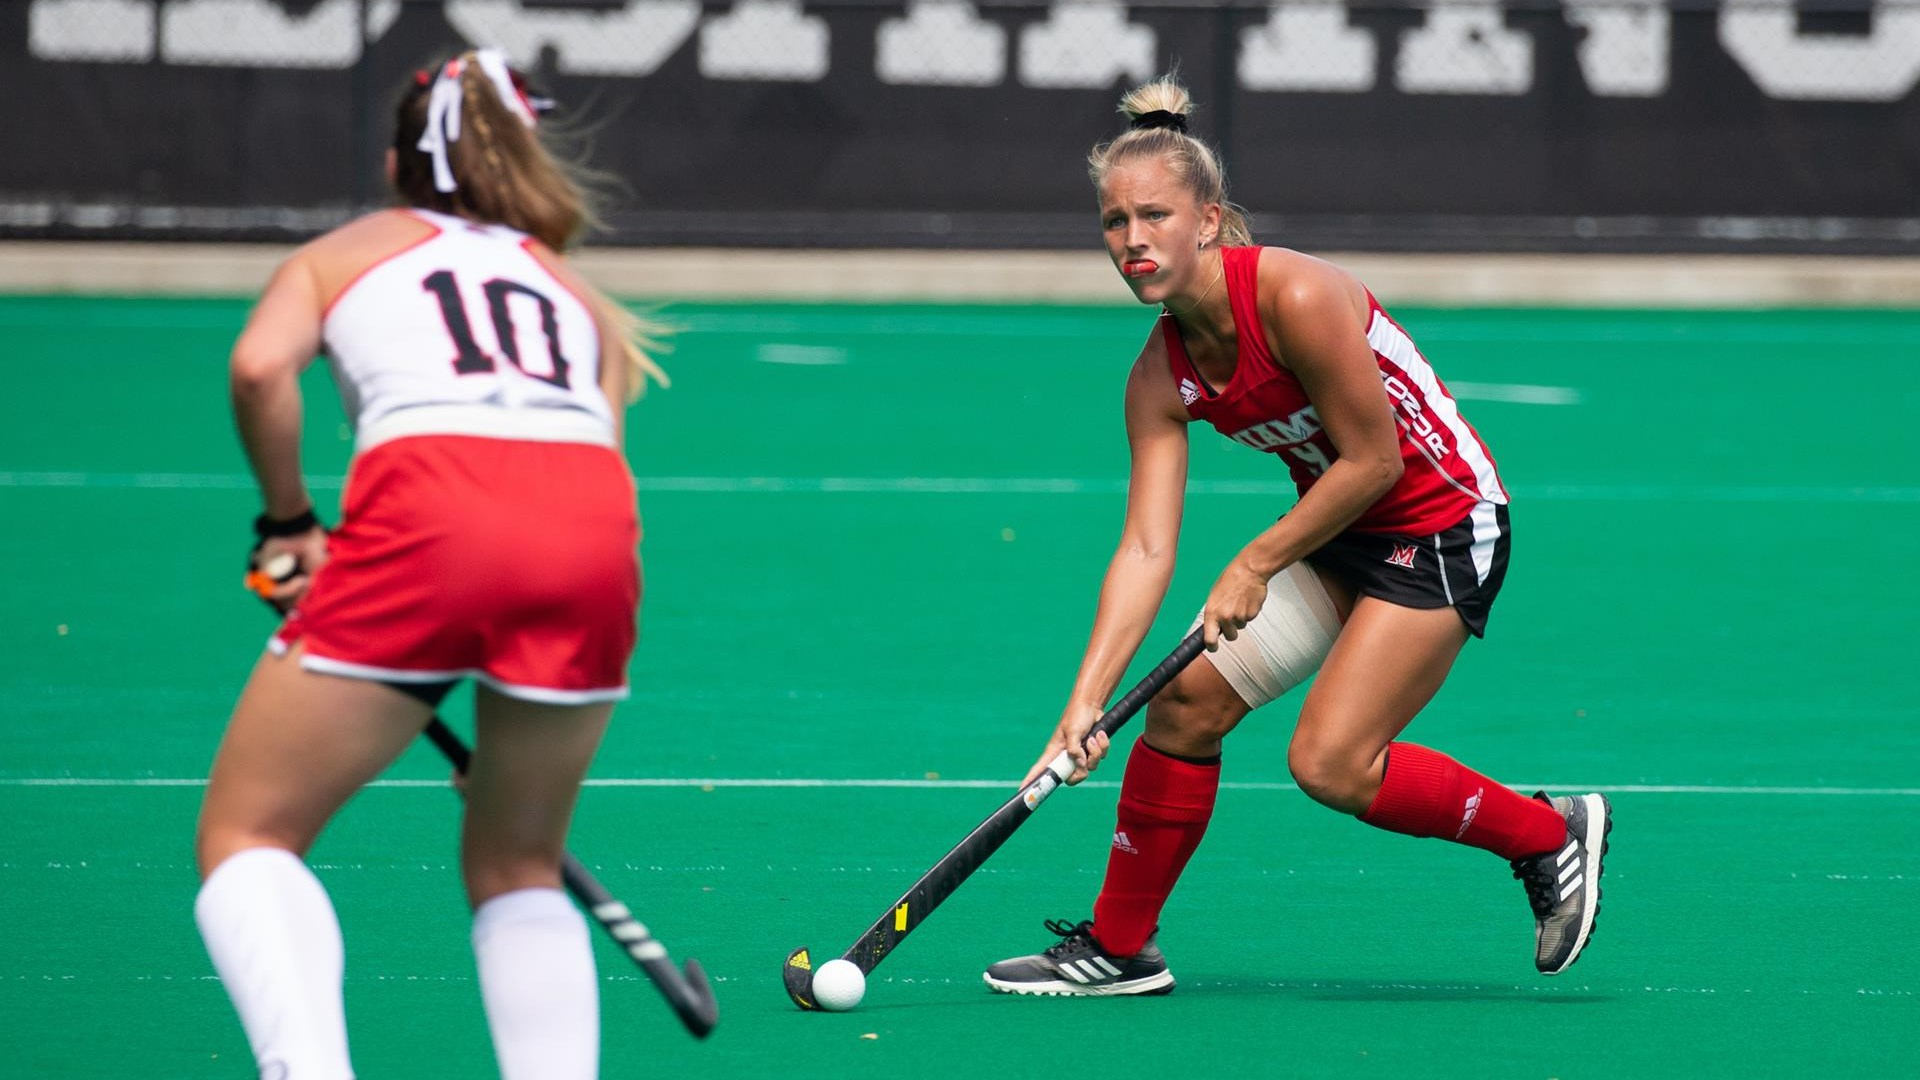 Miami To Play In First Ncaa Sponsored Field Hockey Game In Texas Miami University Redhawks